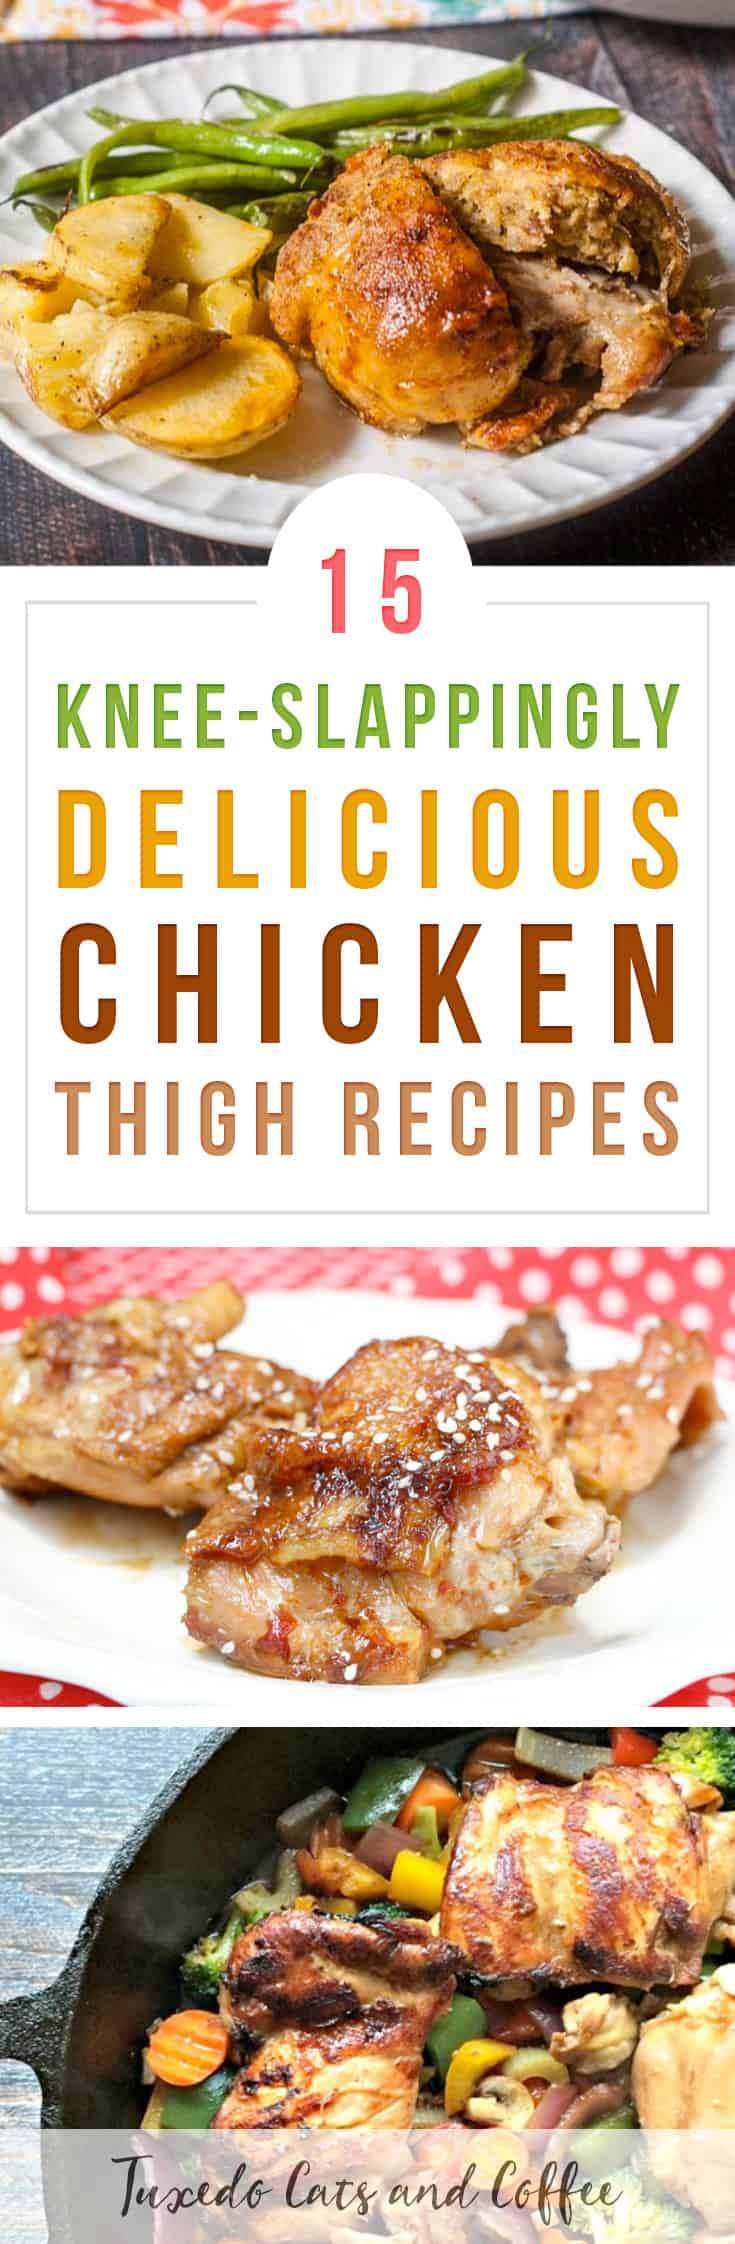 Looking for a juicy and flavorful chicken meal idea for dinner? Here are 15 knee-slappingly delicious chicken thigh recipes. (See what I did there? We're talking about chicken 'thighs' so I said 'knee'-slapping? Ok then. I think that qualifies as a Dad joke... ;))